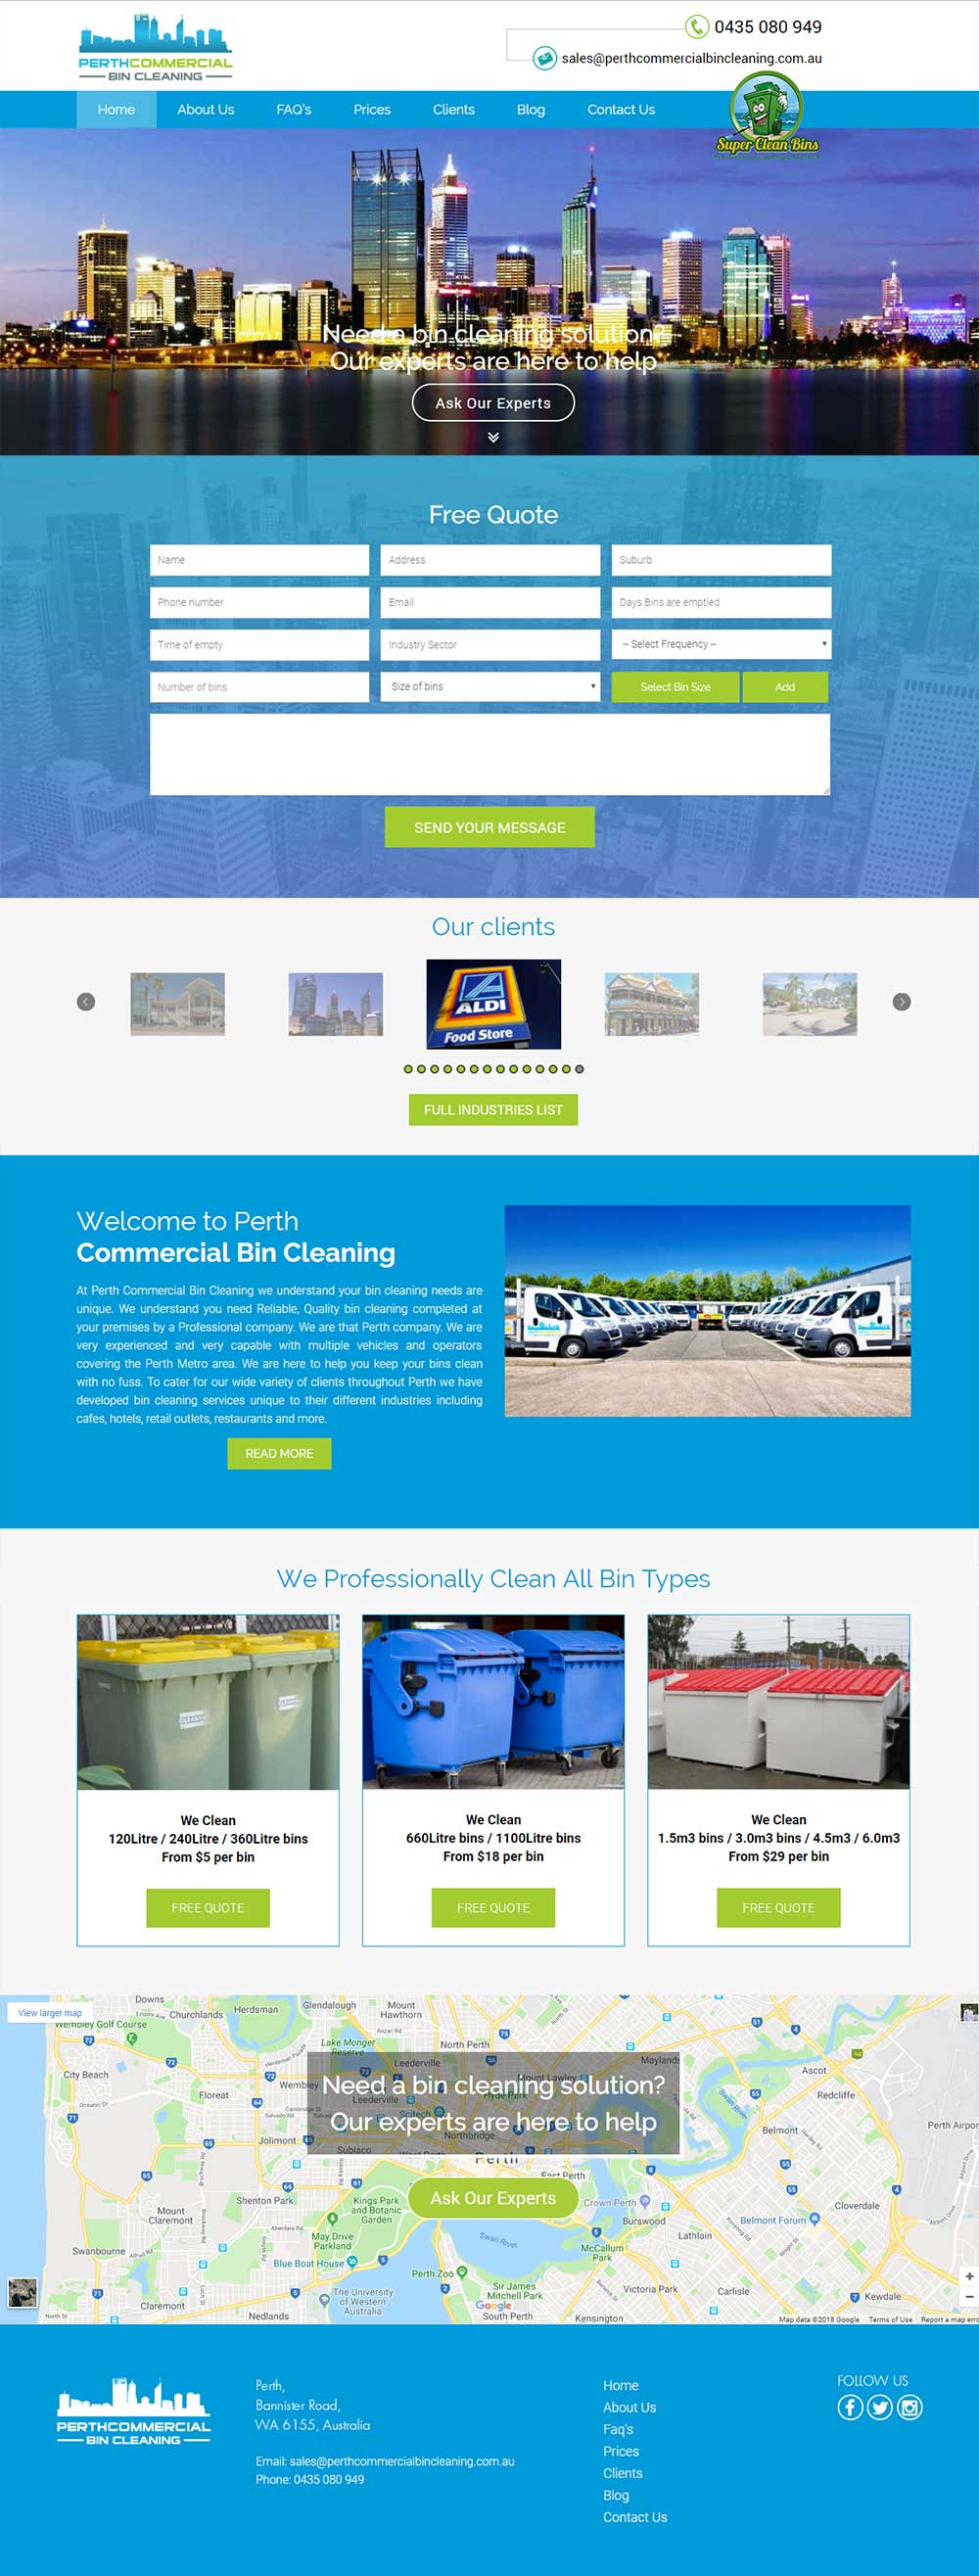 Perth Commercial Bin Cleaning